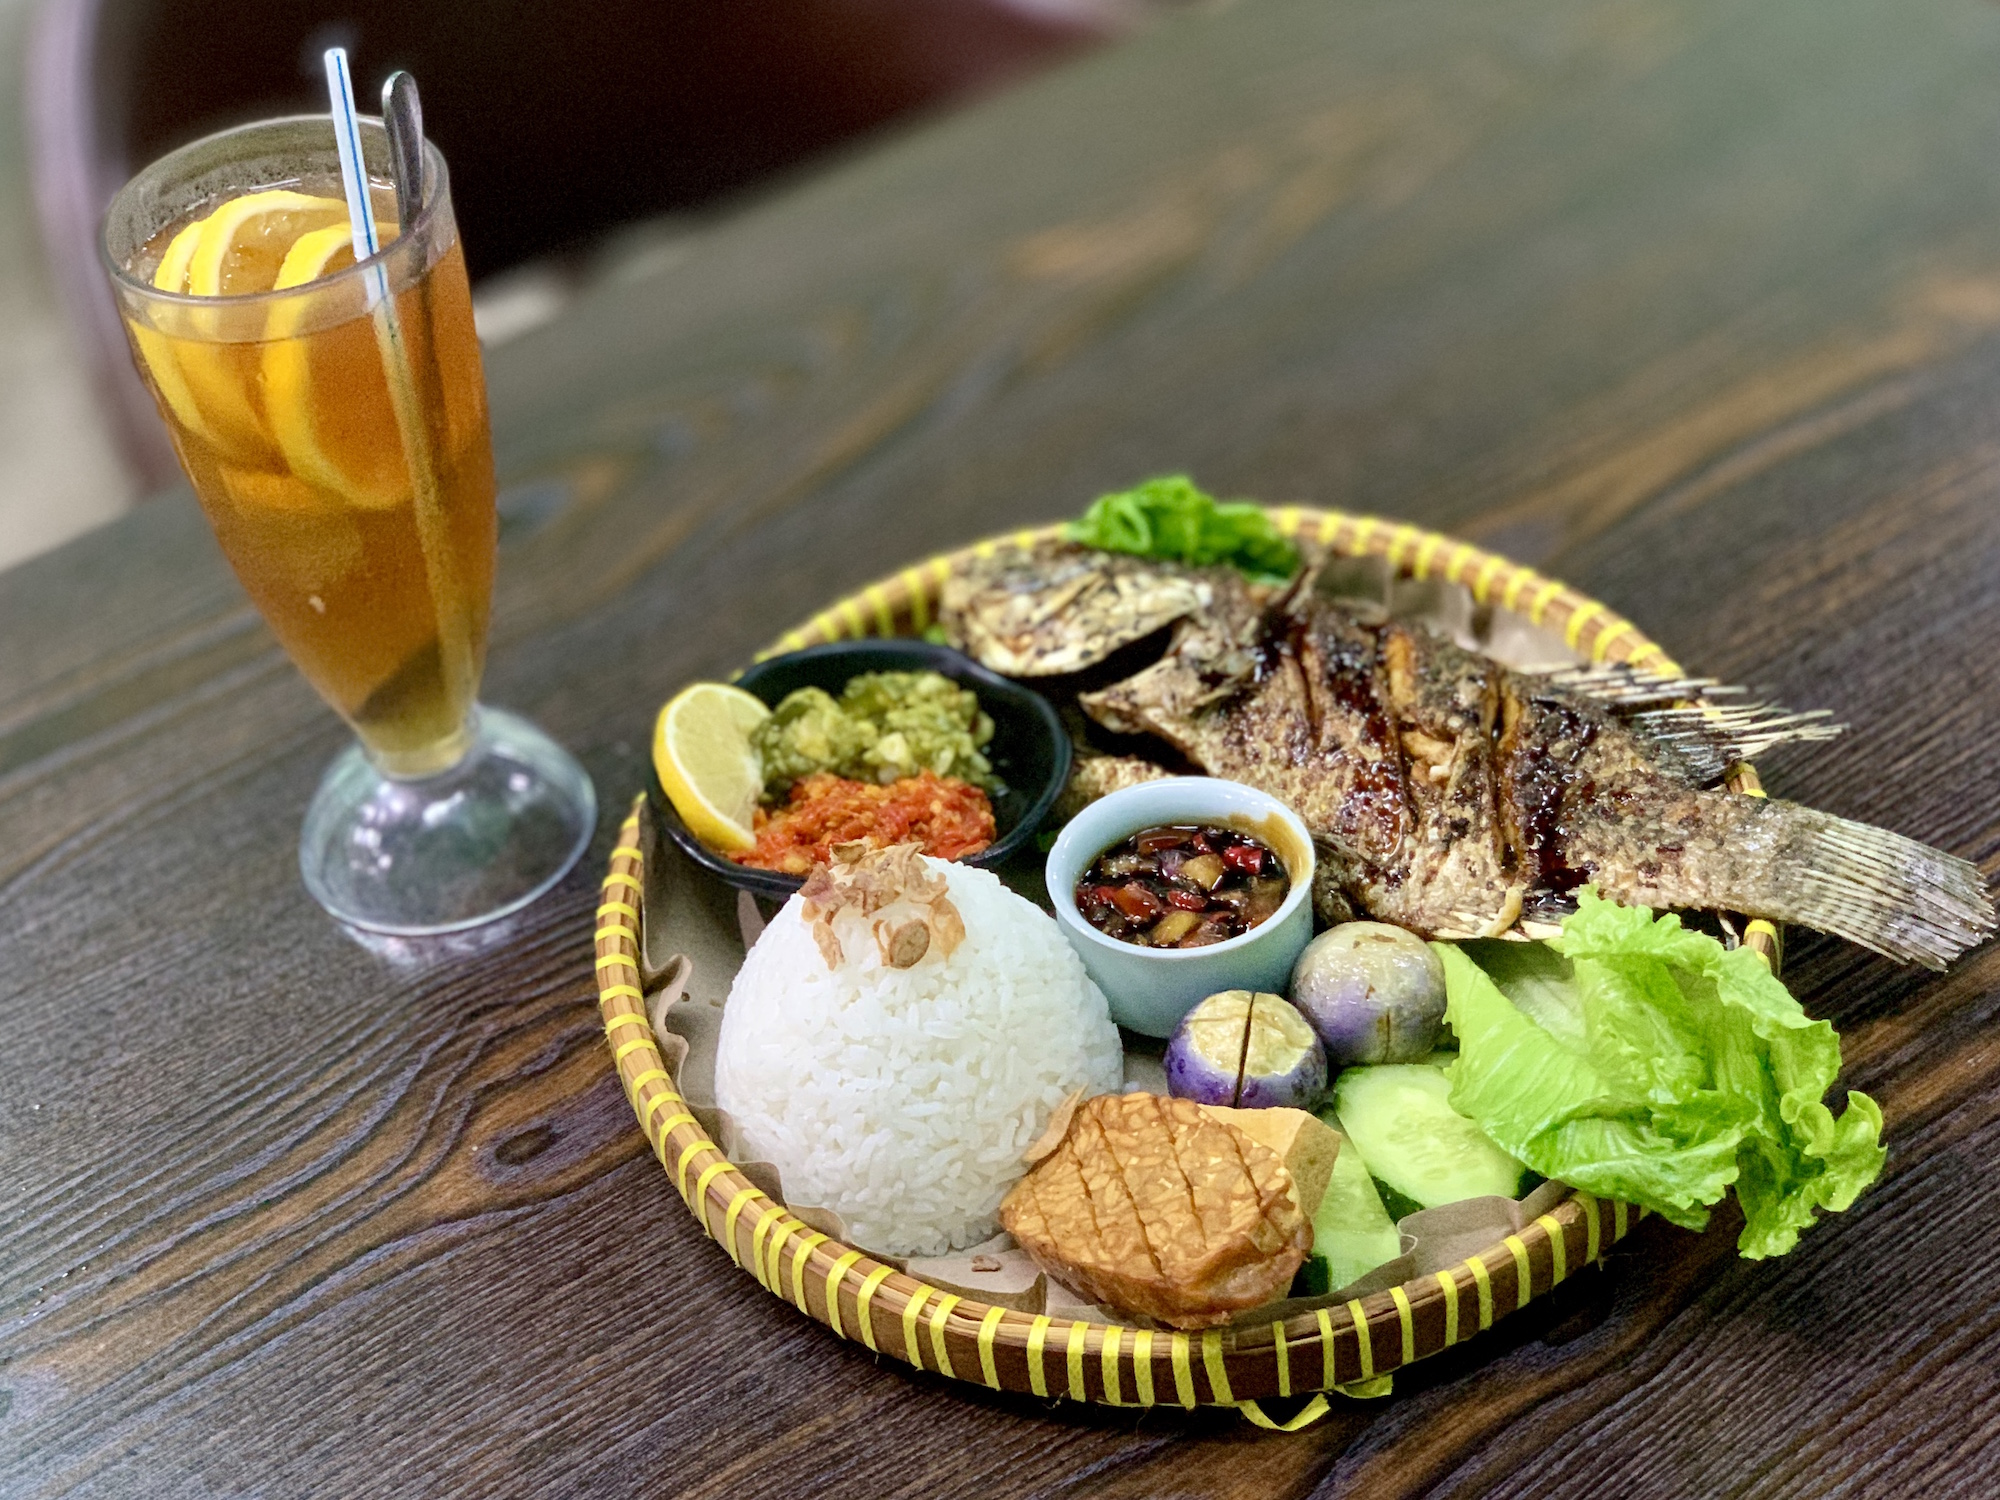 Cafe Sambal Jawa Indonesia Restaurant Interior Fried Fish with Rice and Spices and Iced Tea Center Macau Lifestyle.jpg